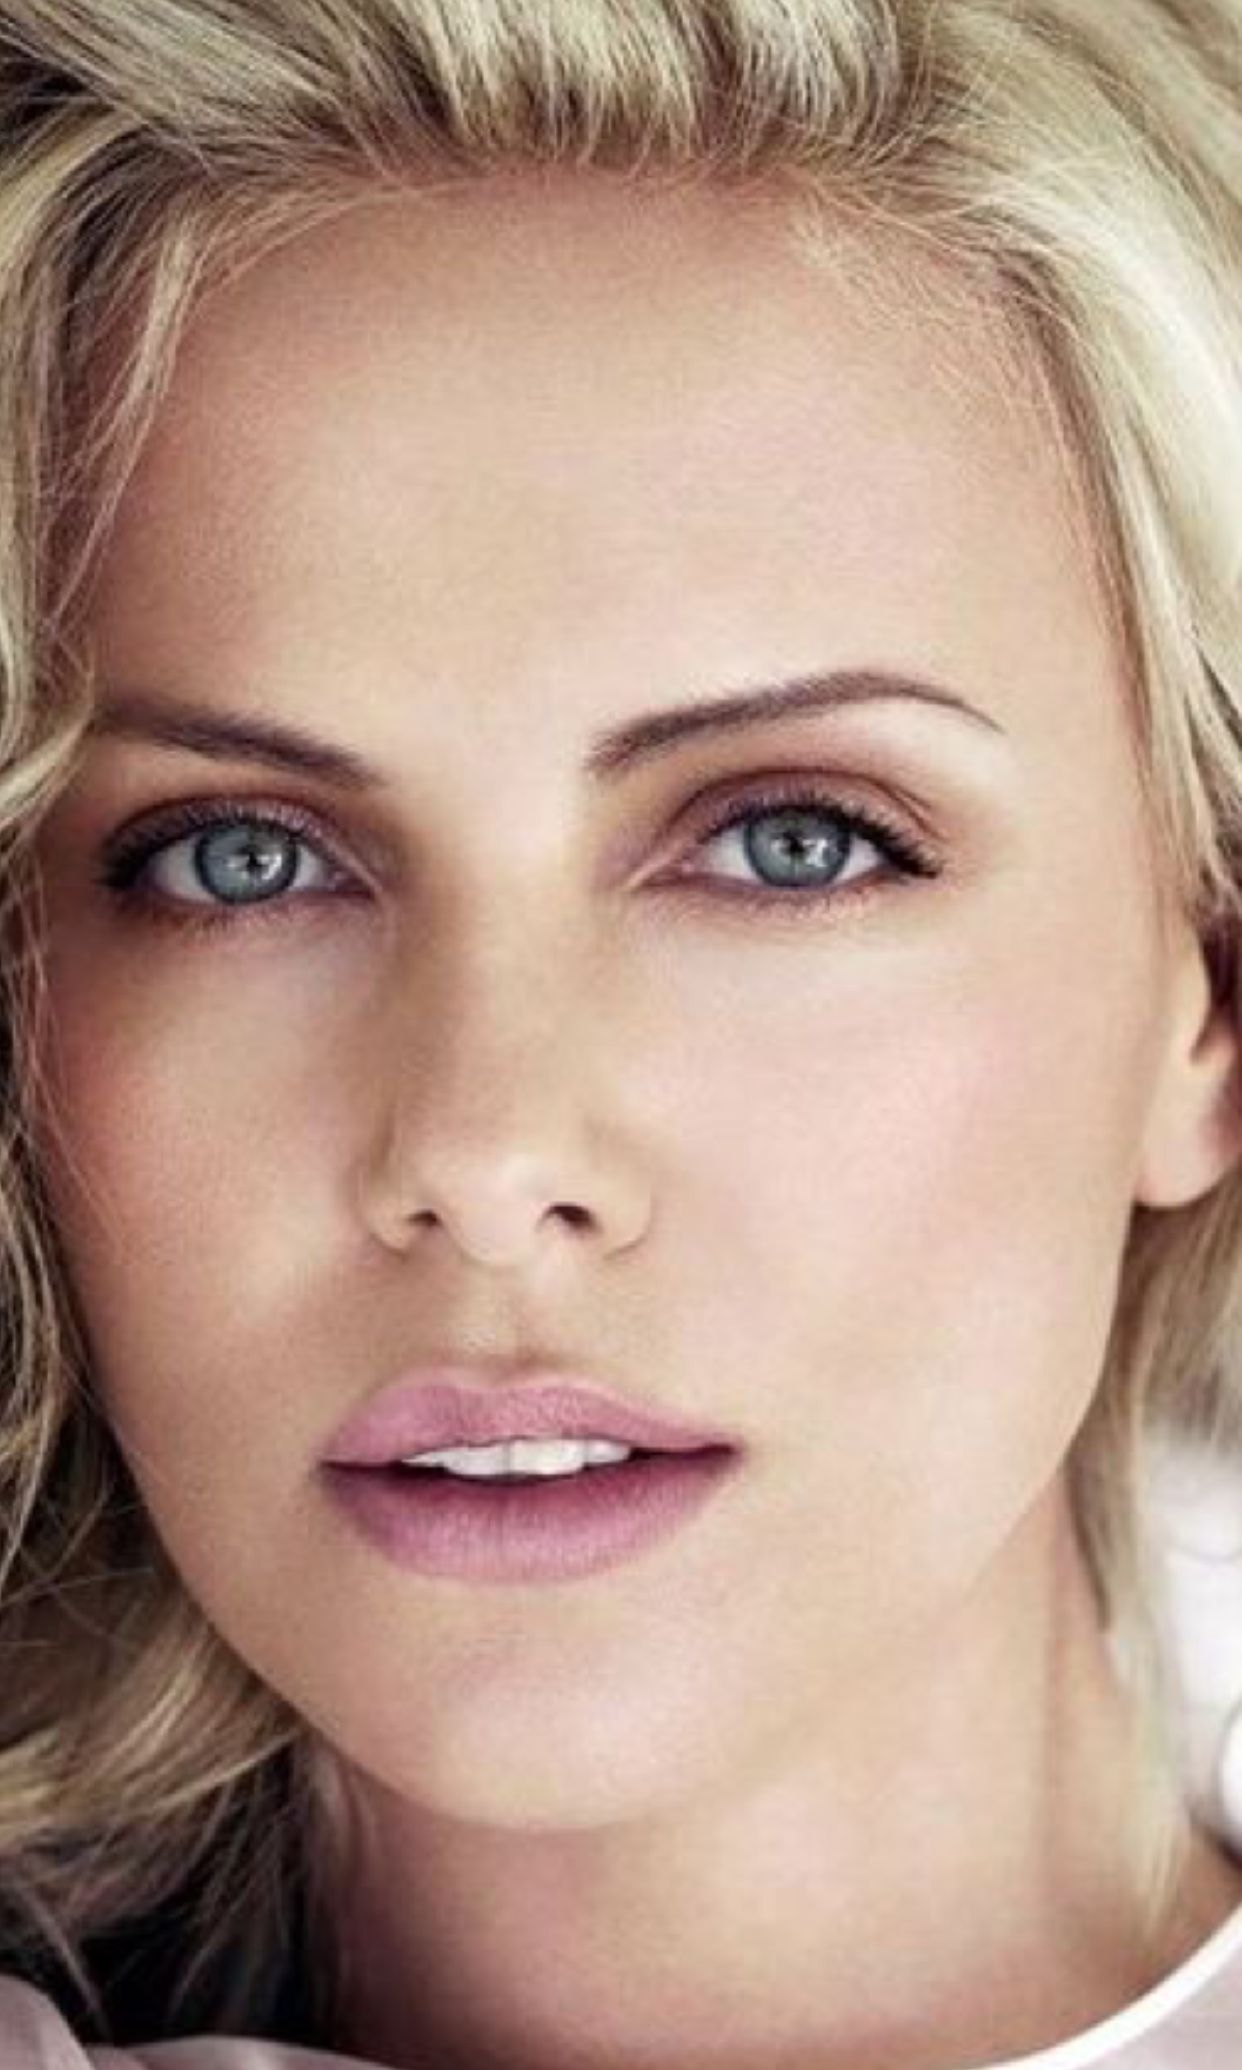 Charlize This Woman And Blake Lively Were Goddesses On Their